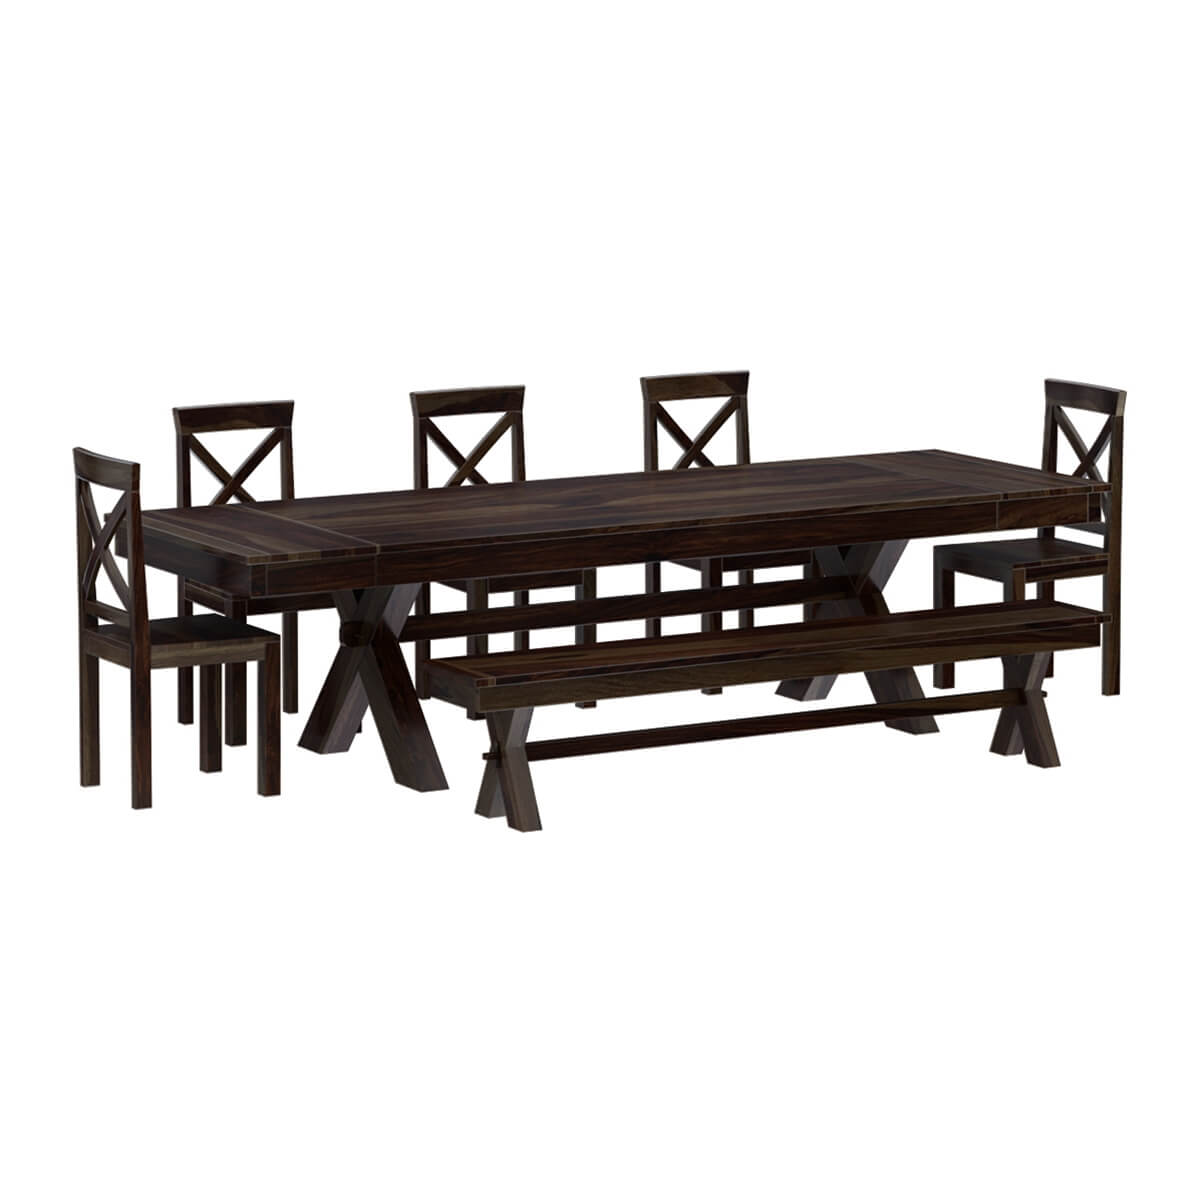 westside indoor picnic style extendable dining table bench set. Black Bedroom Furniture Sets. Home Design Ideas